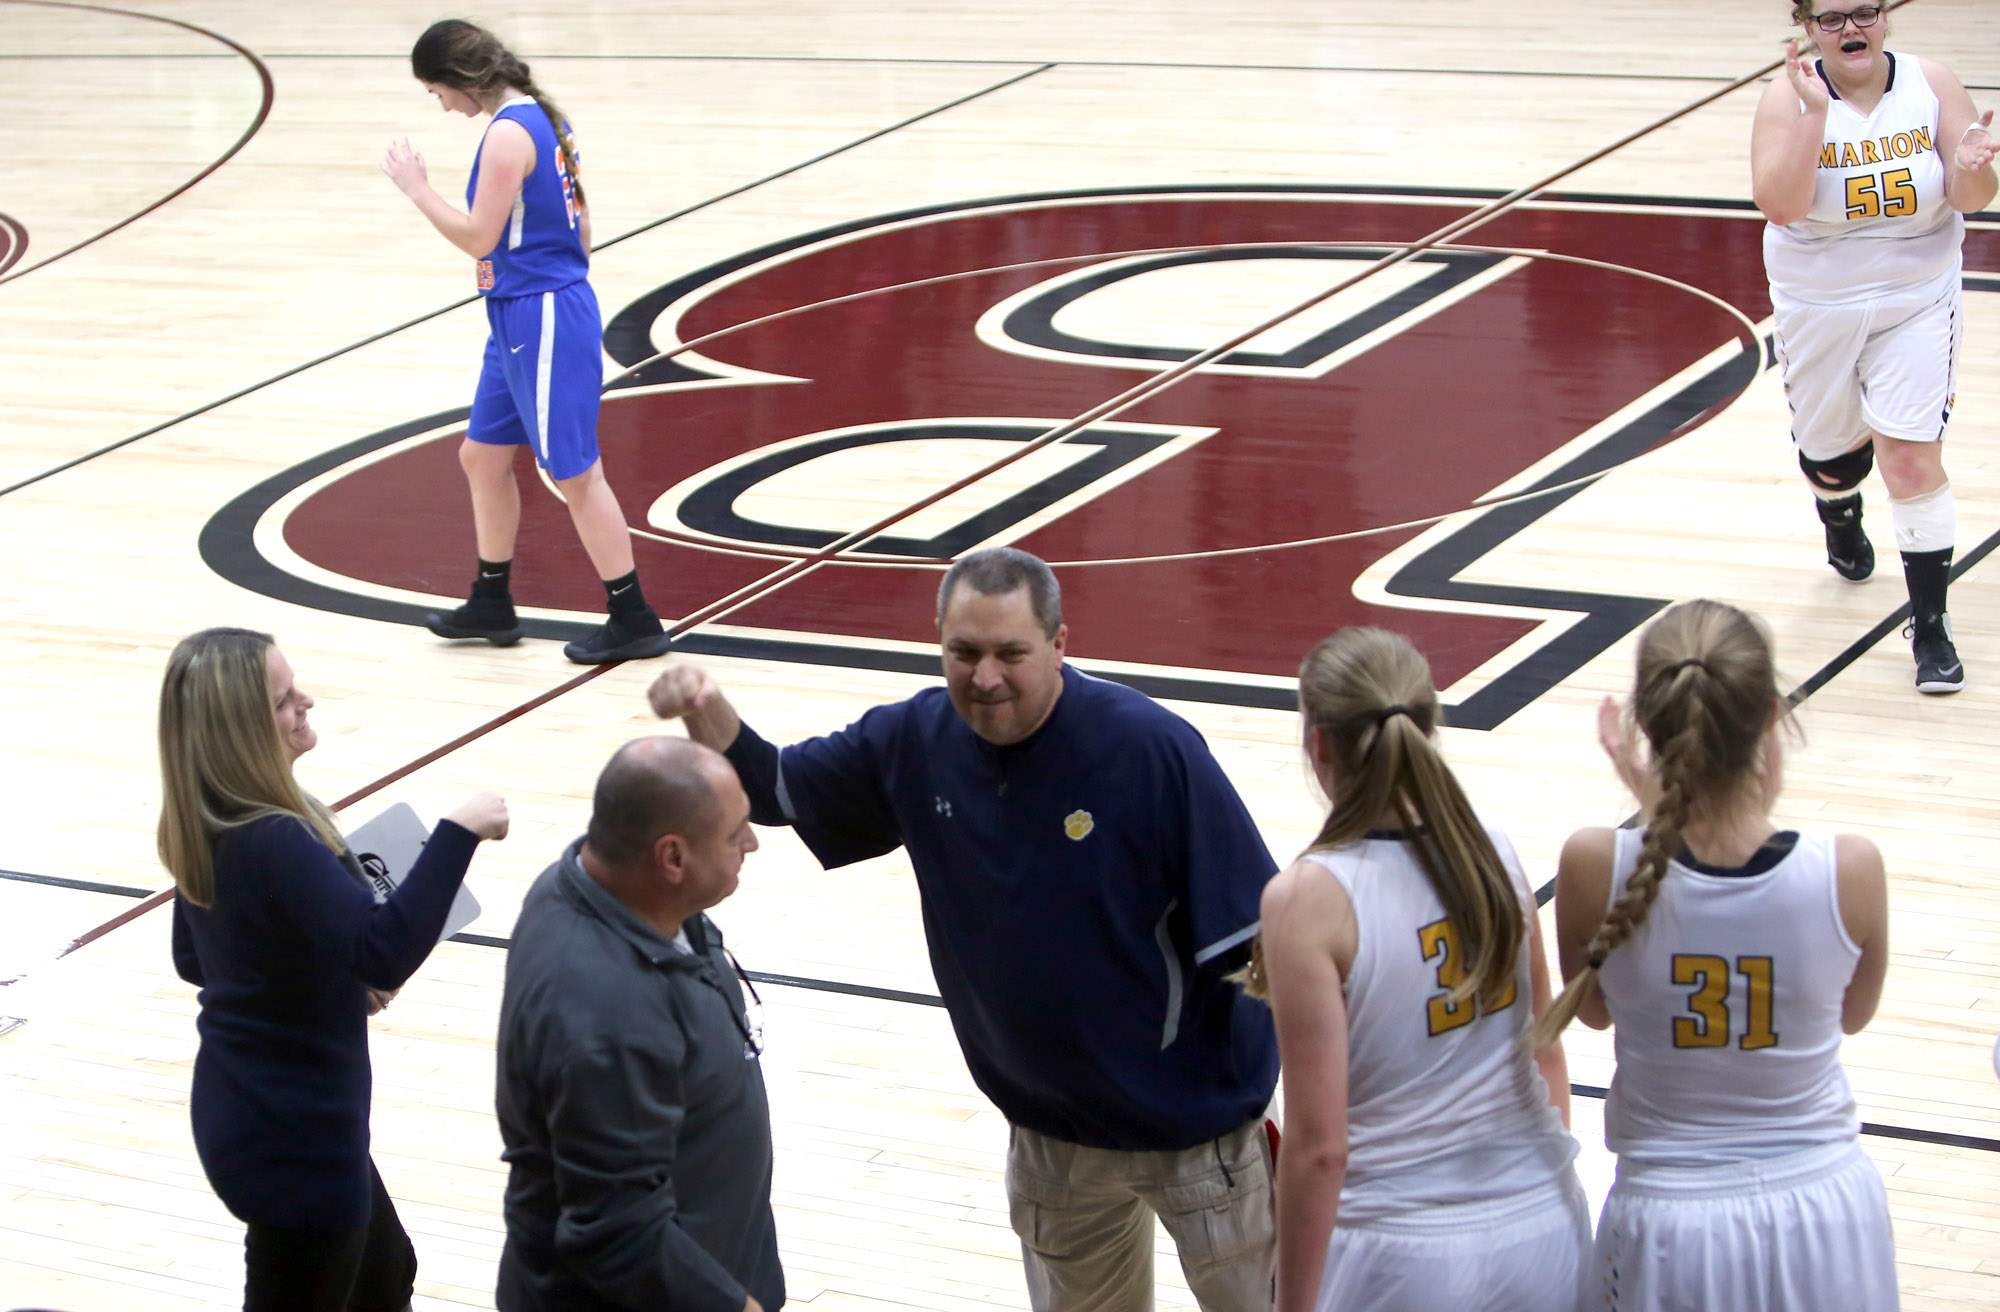 Marion head coach Mike Manfredo gives a fist bump to assistant coach Jaime Clark-Verbeck after Friday's win over Vienna at the Benton Rangerette Christmas Classic.